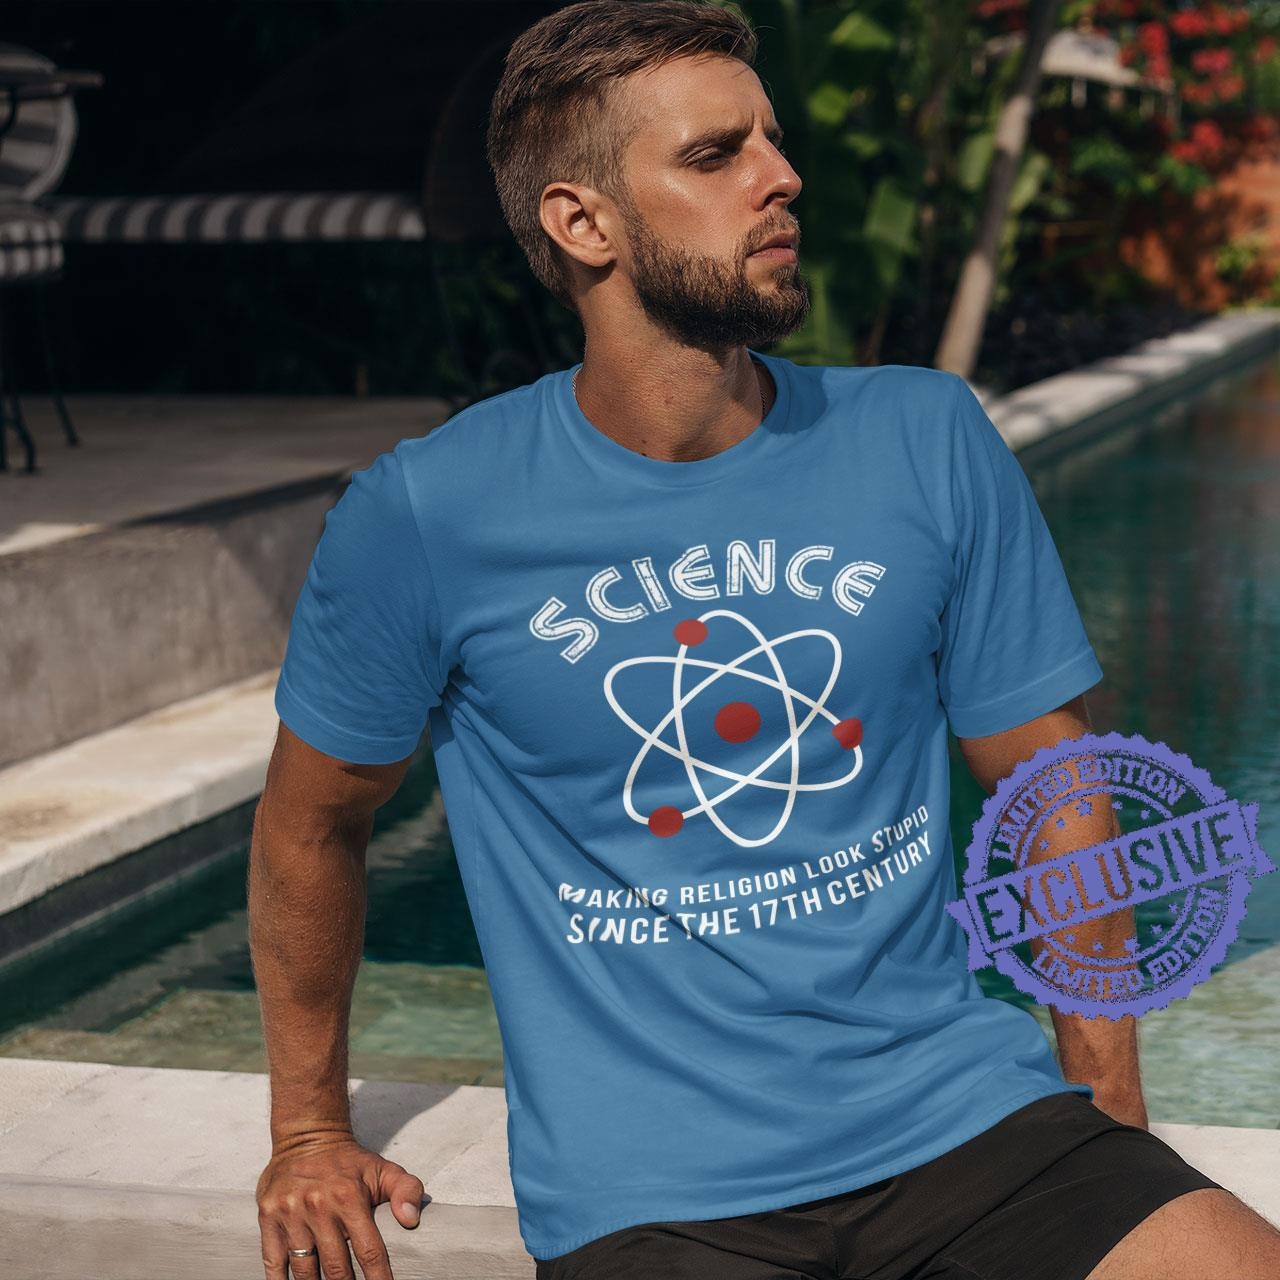 Science making religion look stupid since the 17th century shirt